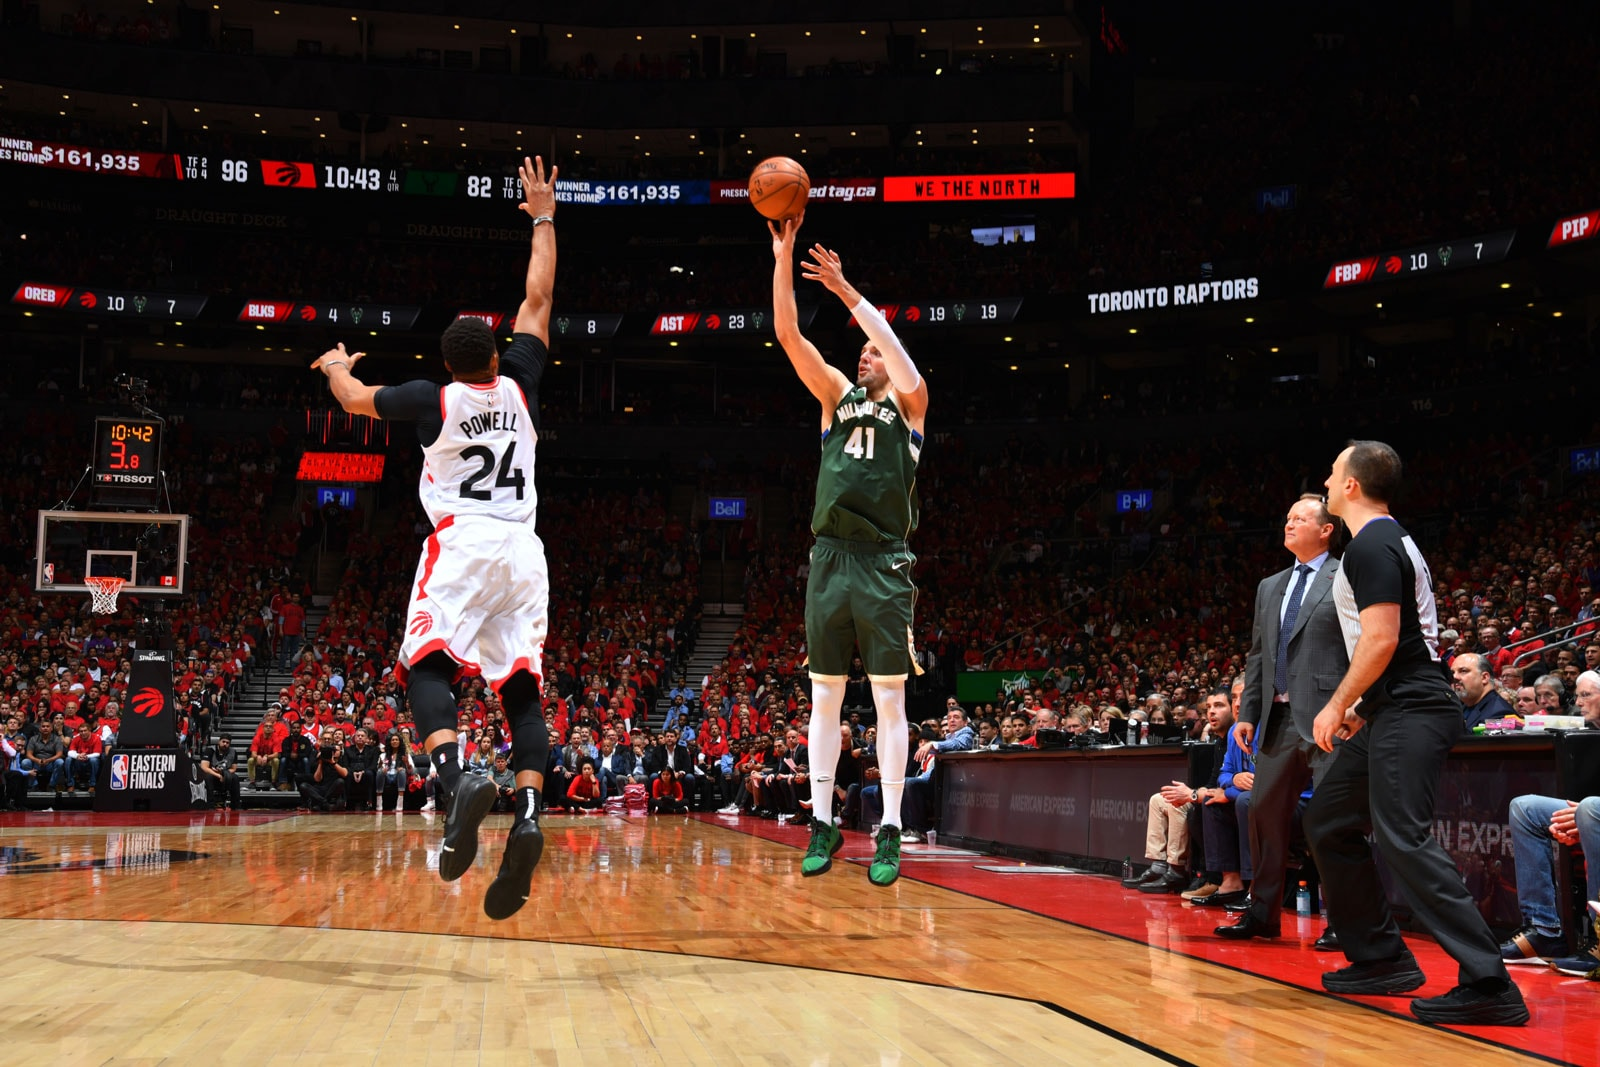 Nikola Mirotic #41 of the Milwaukee Bucks shoots a three-pointer against the Toronto Raptors during Game Four of the Eastern Conference Finals of the 2019 NBA Playoffs on May 19, 2019 at the Scotiabank Arena in Toronto, Ontario, Canada.